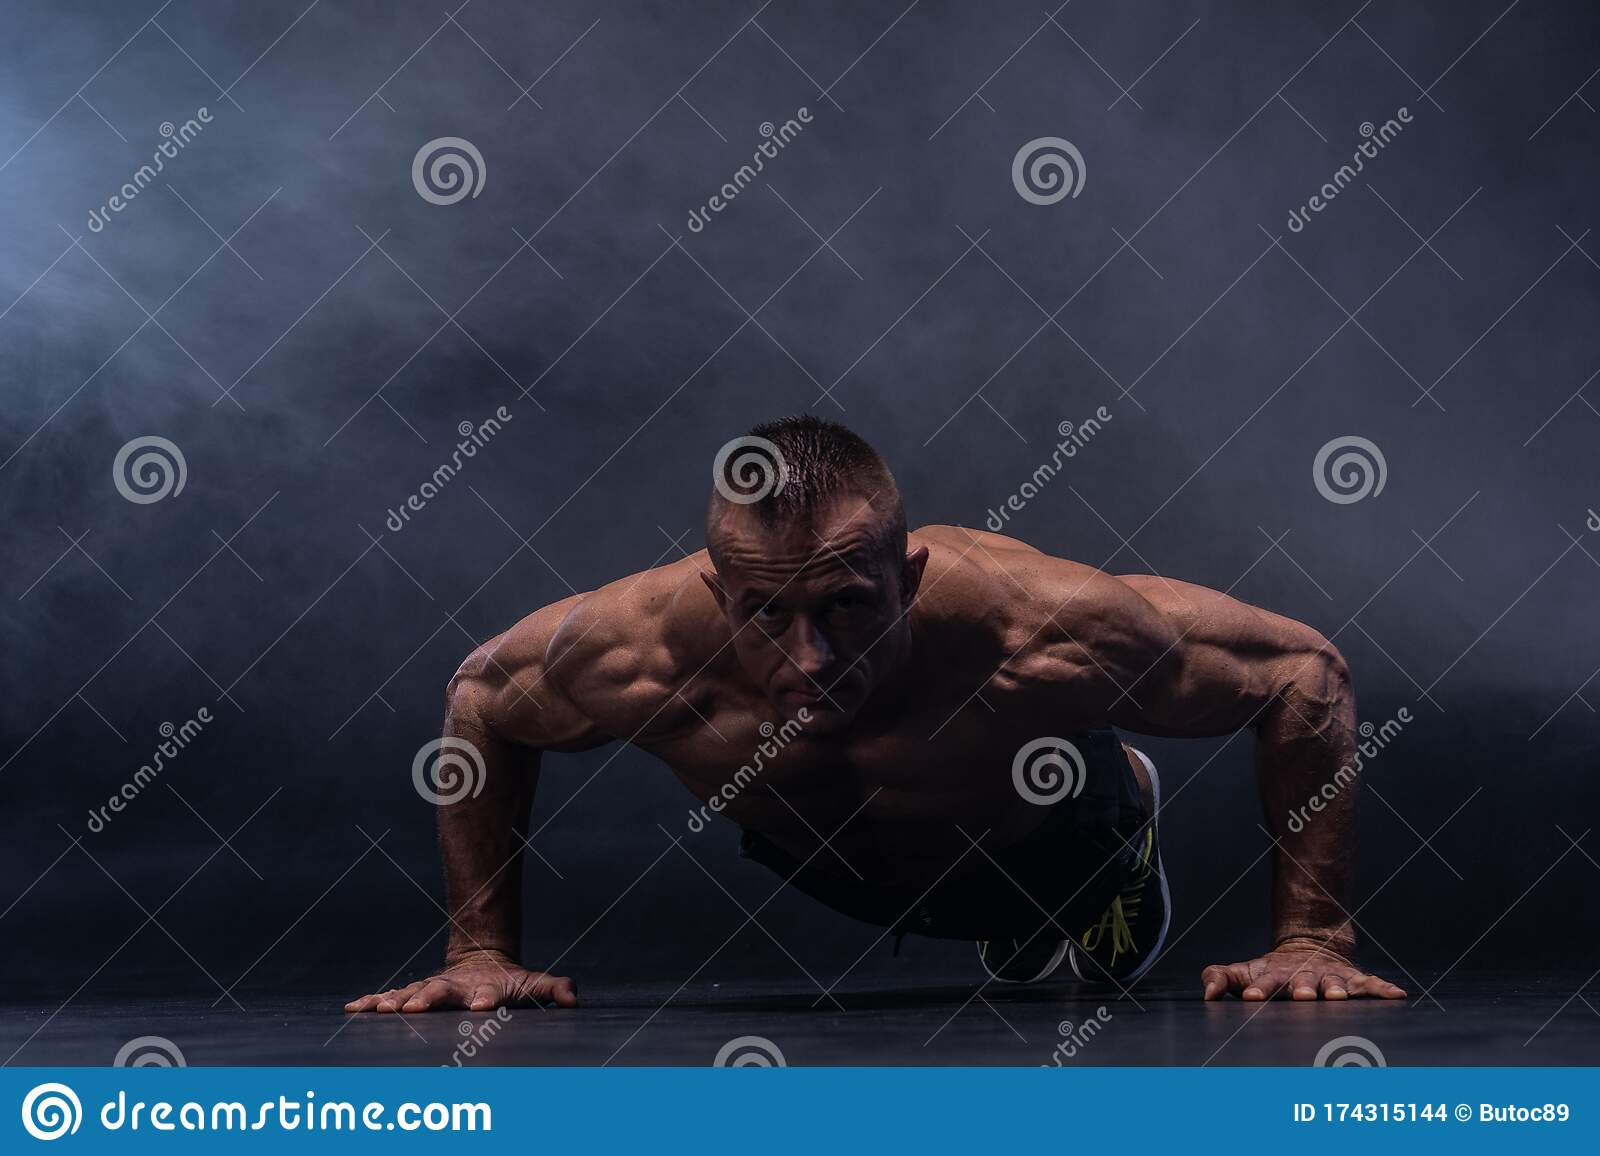 Closeup View Of Young Athletic Muscular Man Doing Push-ups